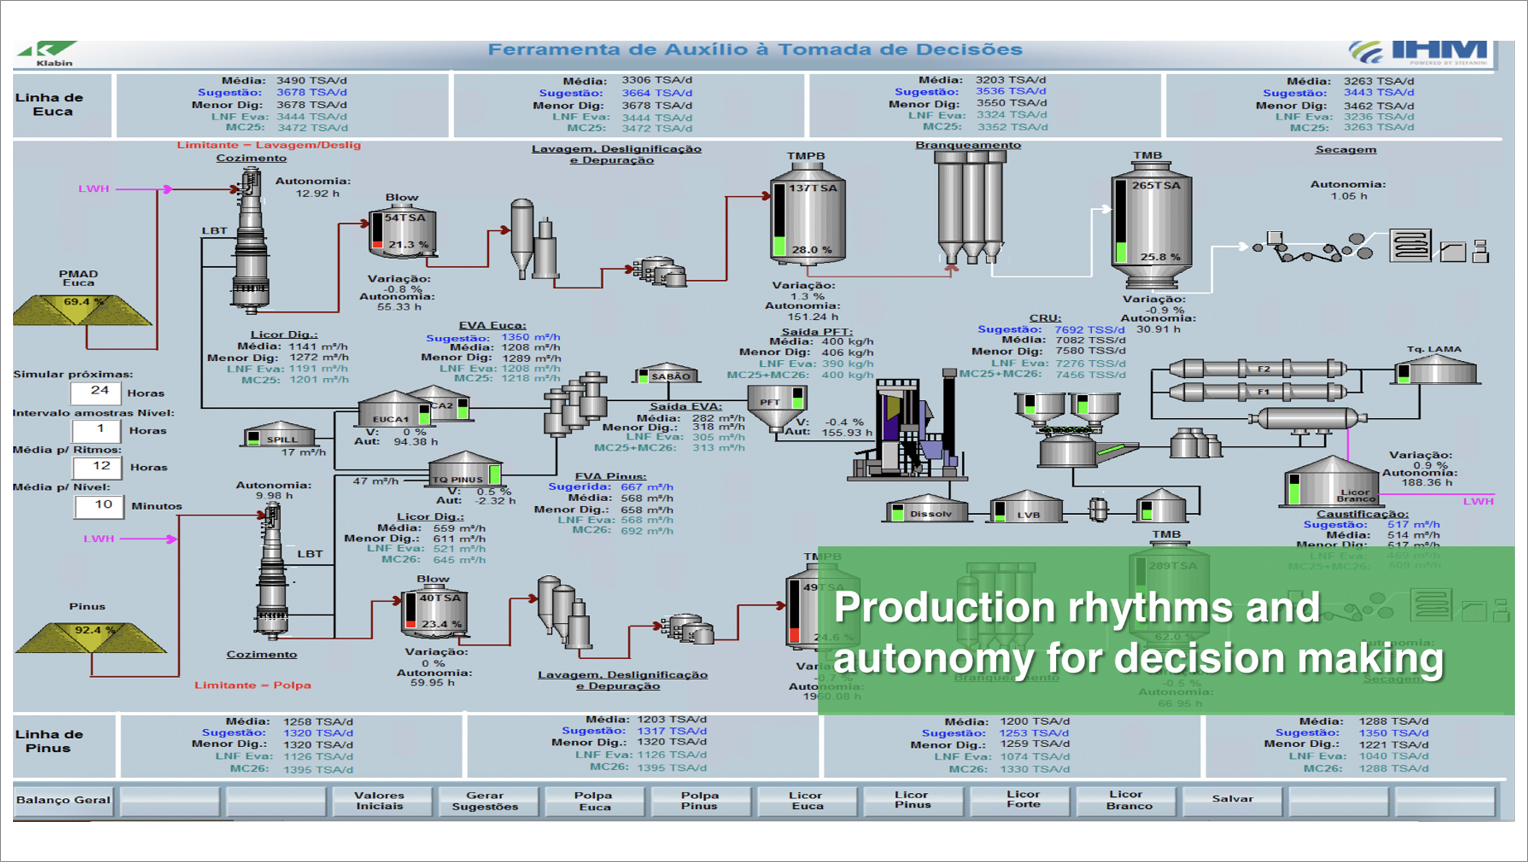 production rhythms and autonomy for decision making